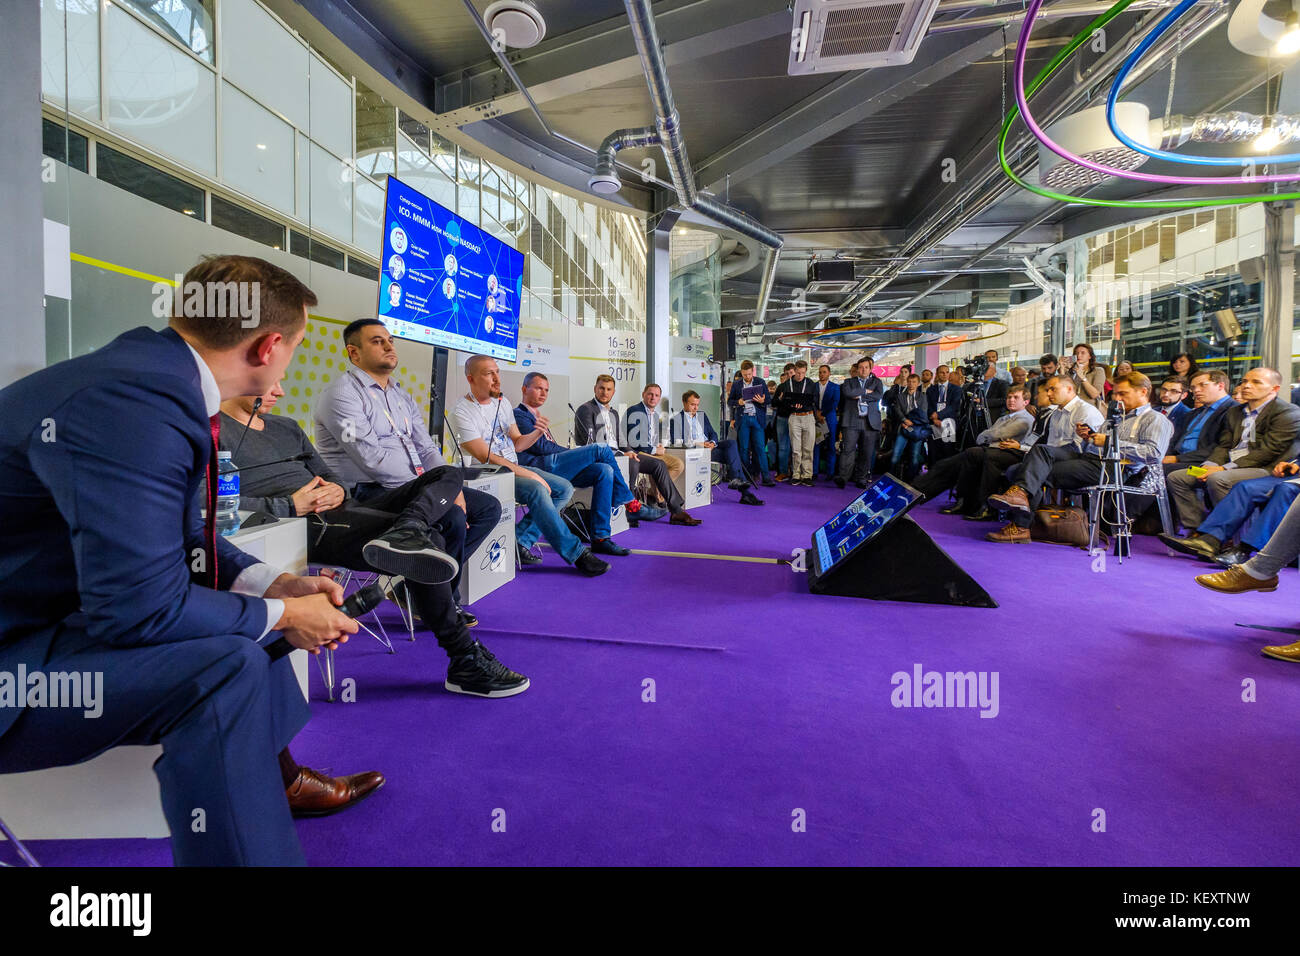 People attend Open Innovations 2017 forum Stock Photo